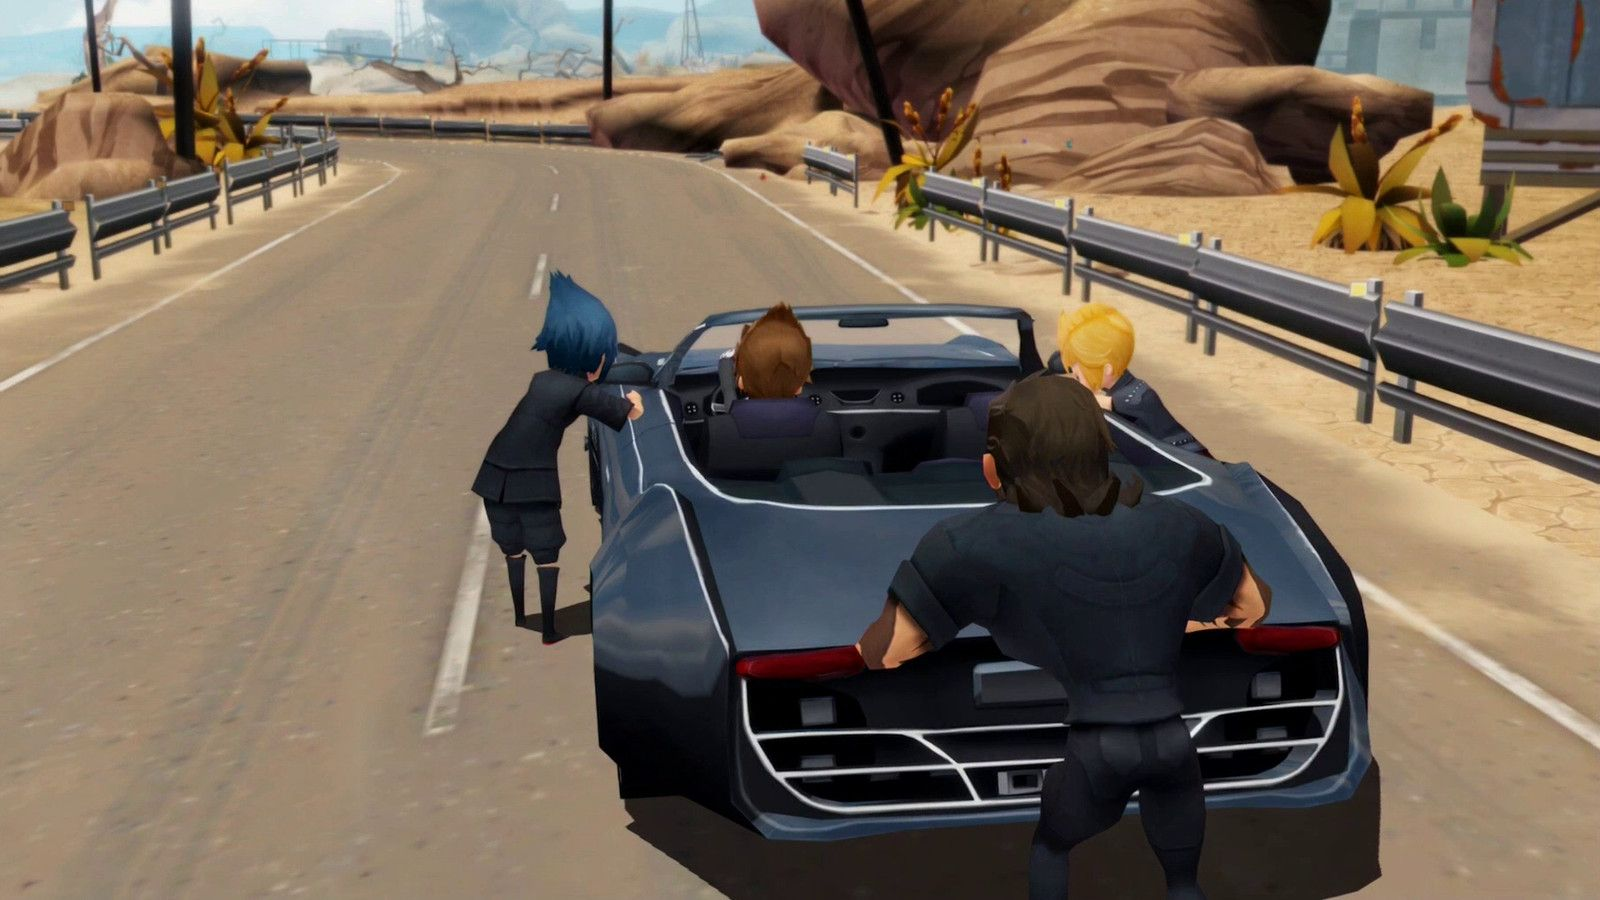 Final Fantasy XV is being remade as an adorable mobile game